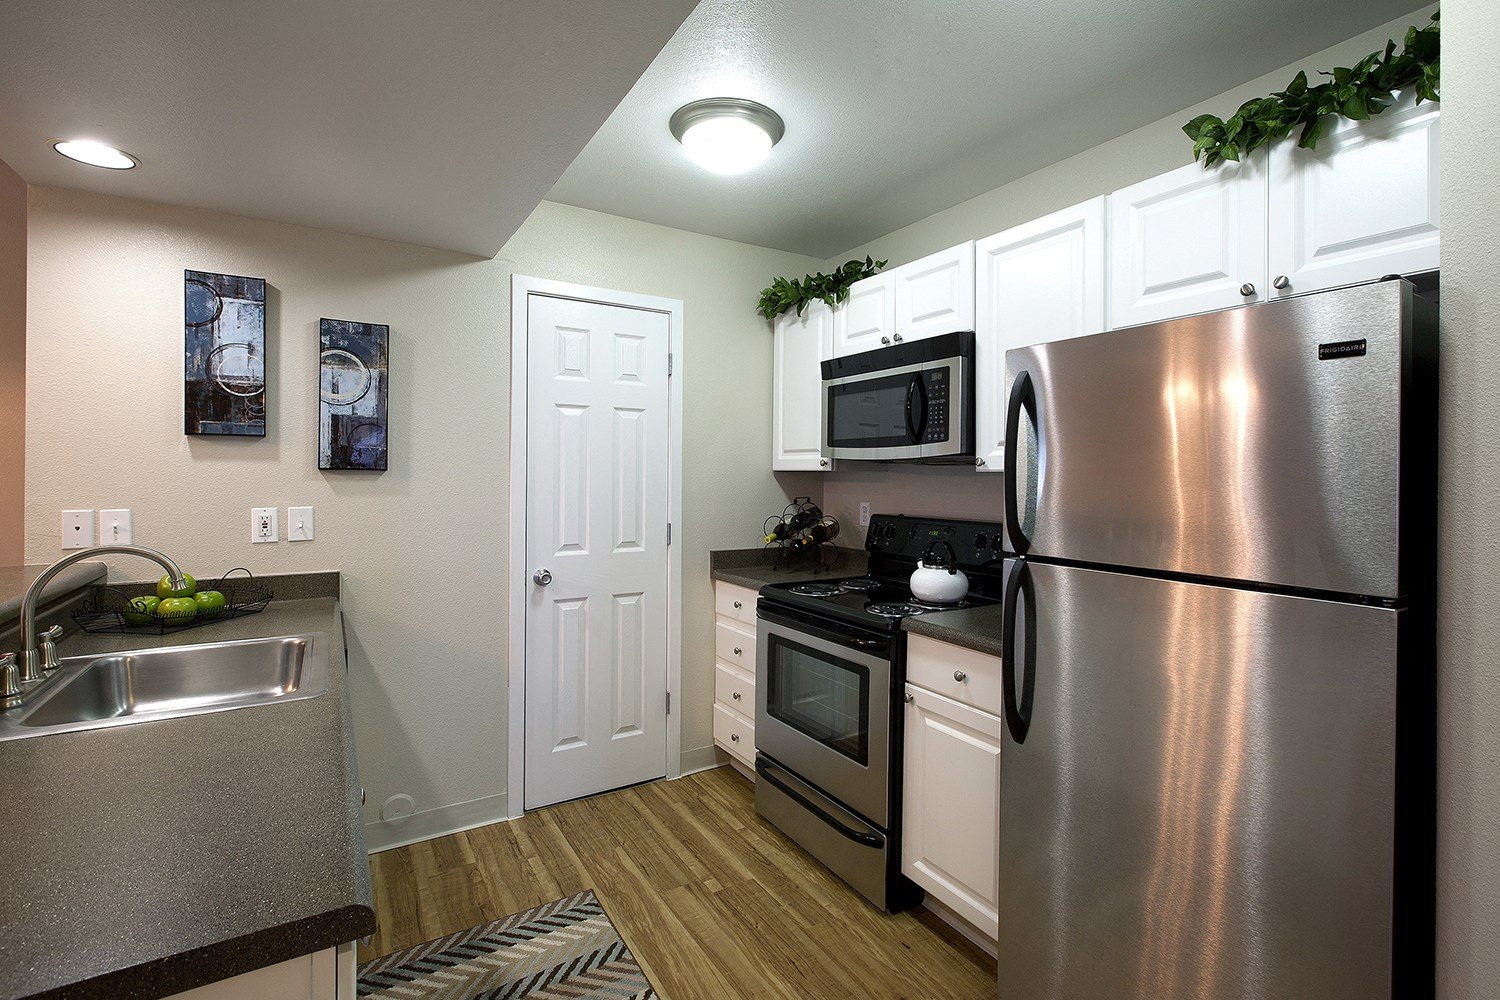 Kitchen at Pinecone Apartments in Fort Collins, CO